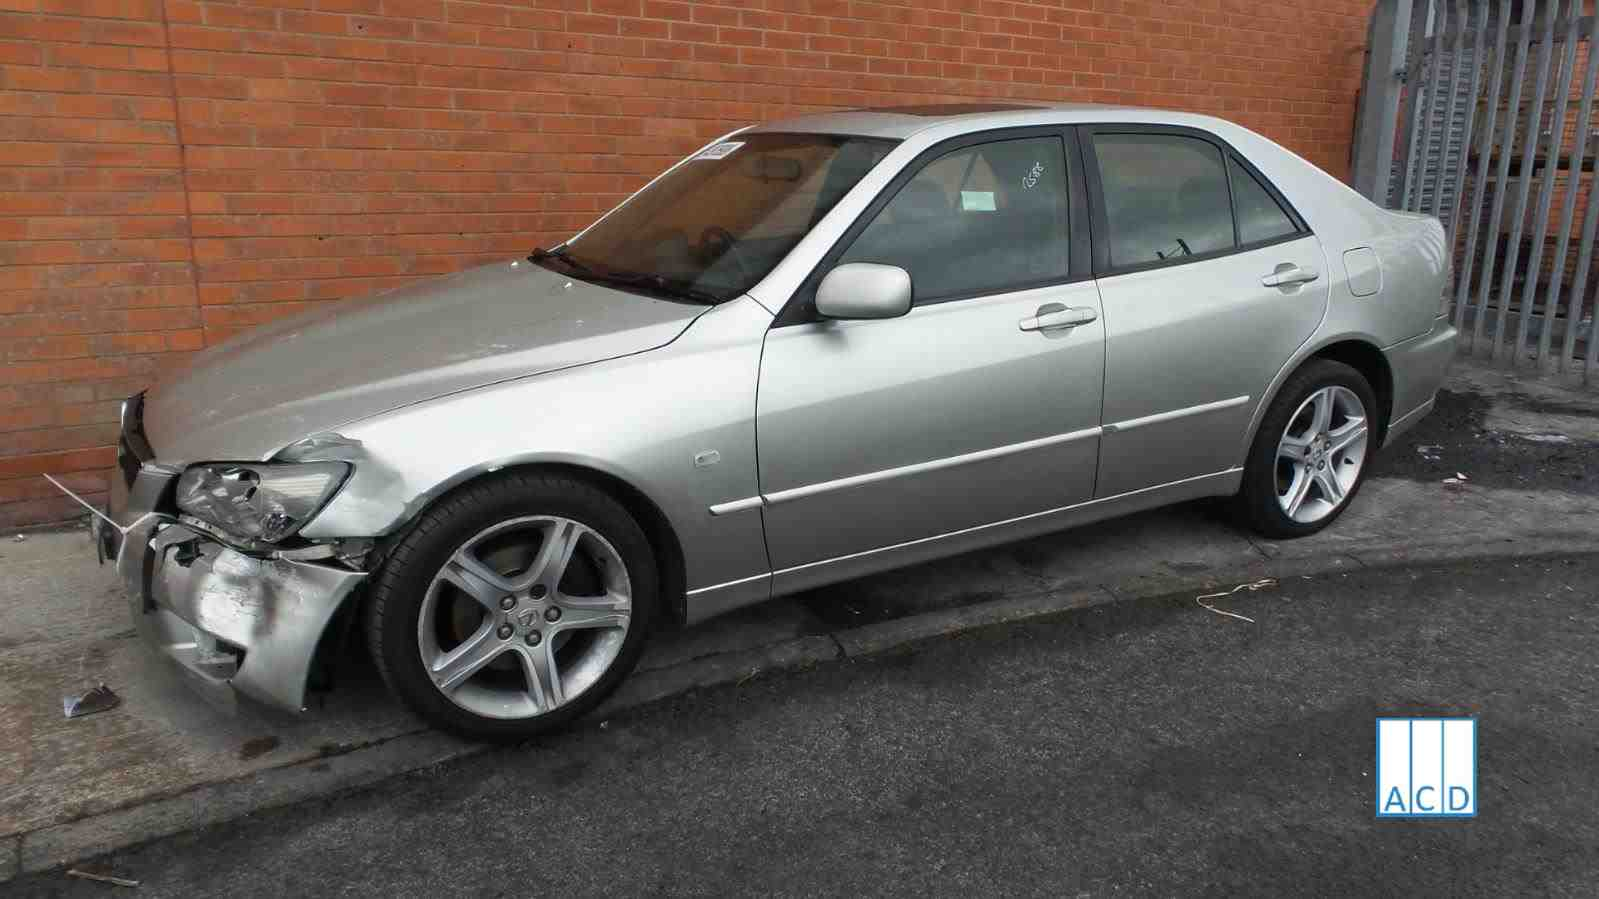 Lexus IS200 SE 2.0L Petrol 6-Speed Manual 2002 #2588 01